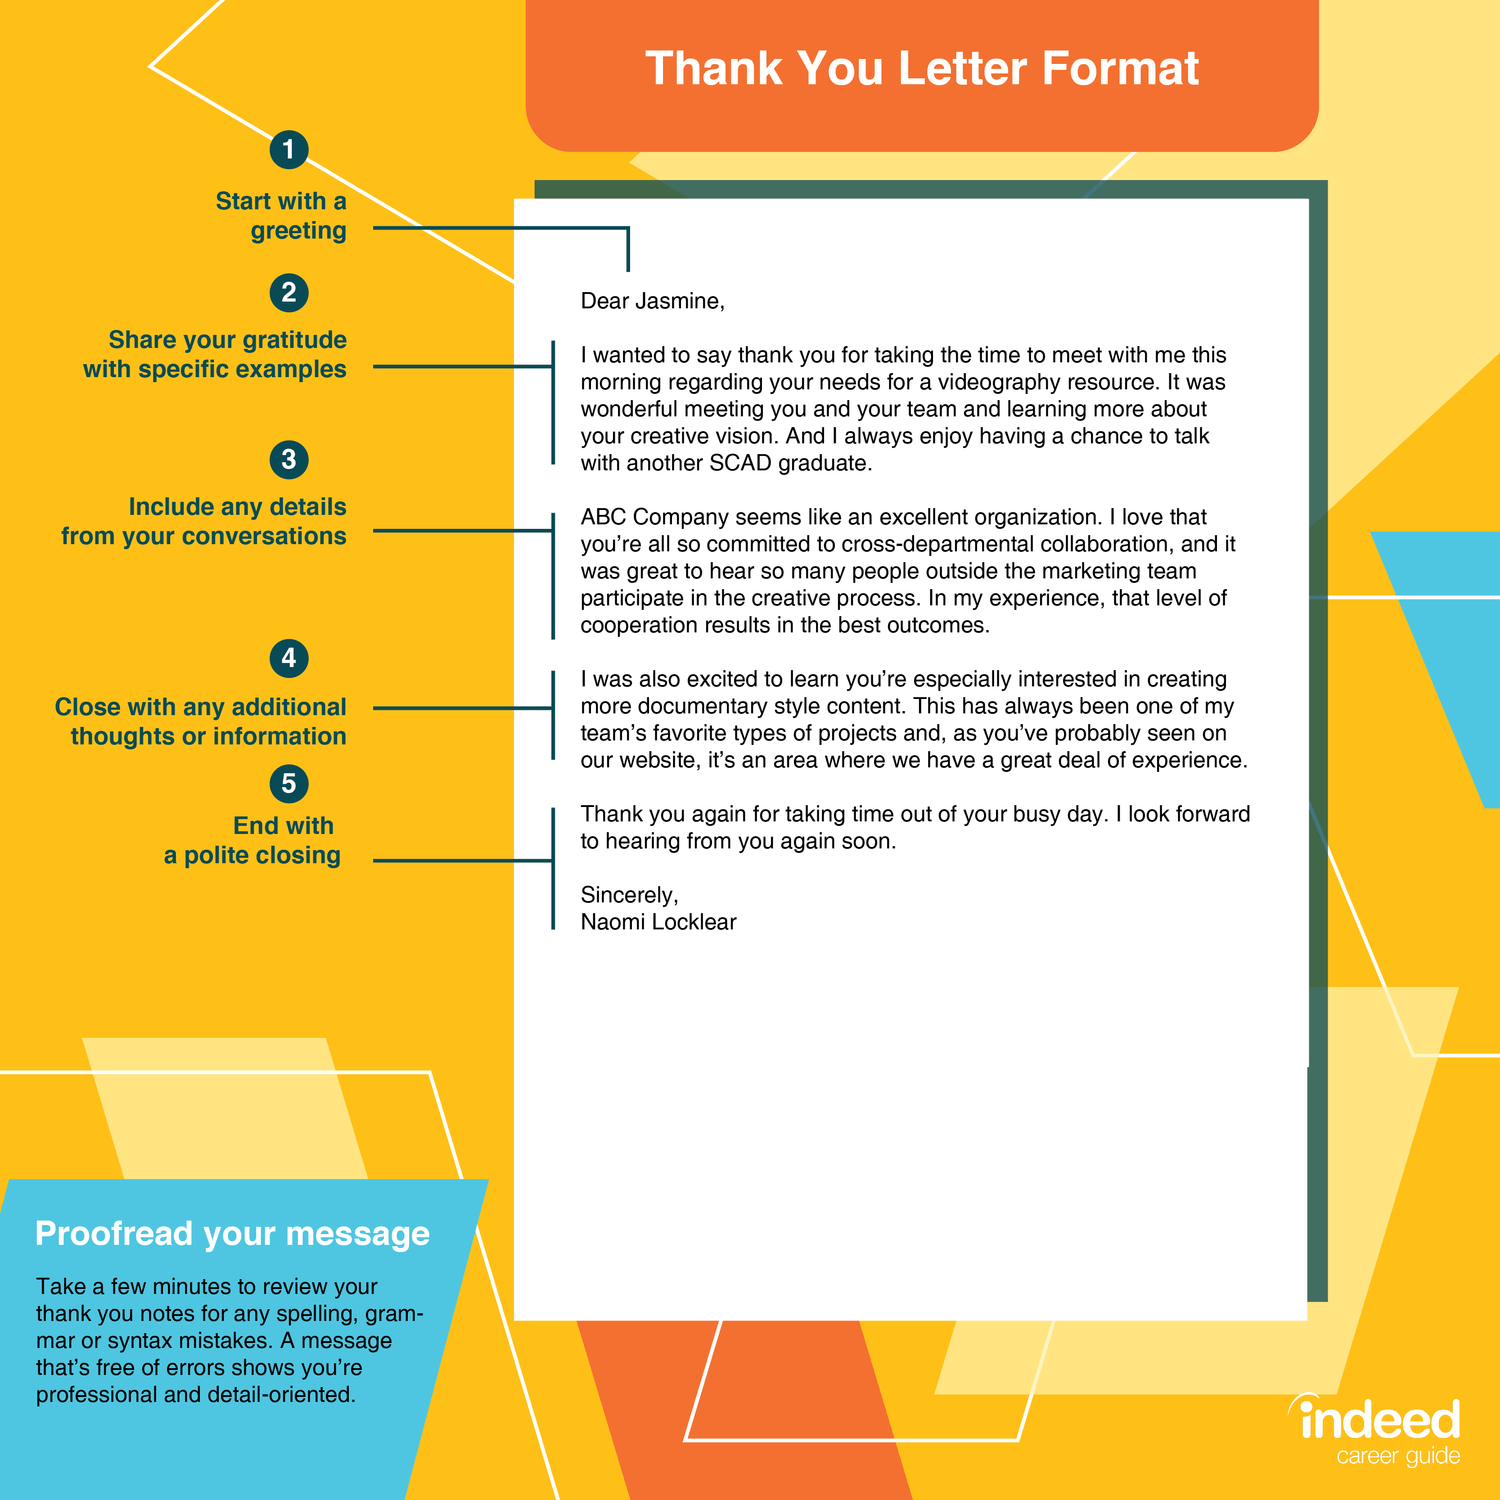 How To Write An Appreciation Letter With Examples Indeed Com